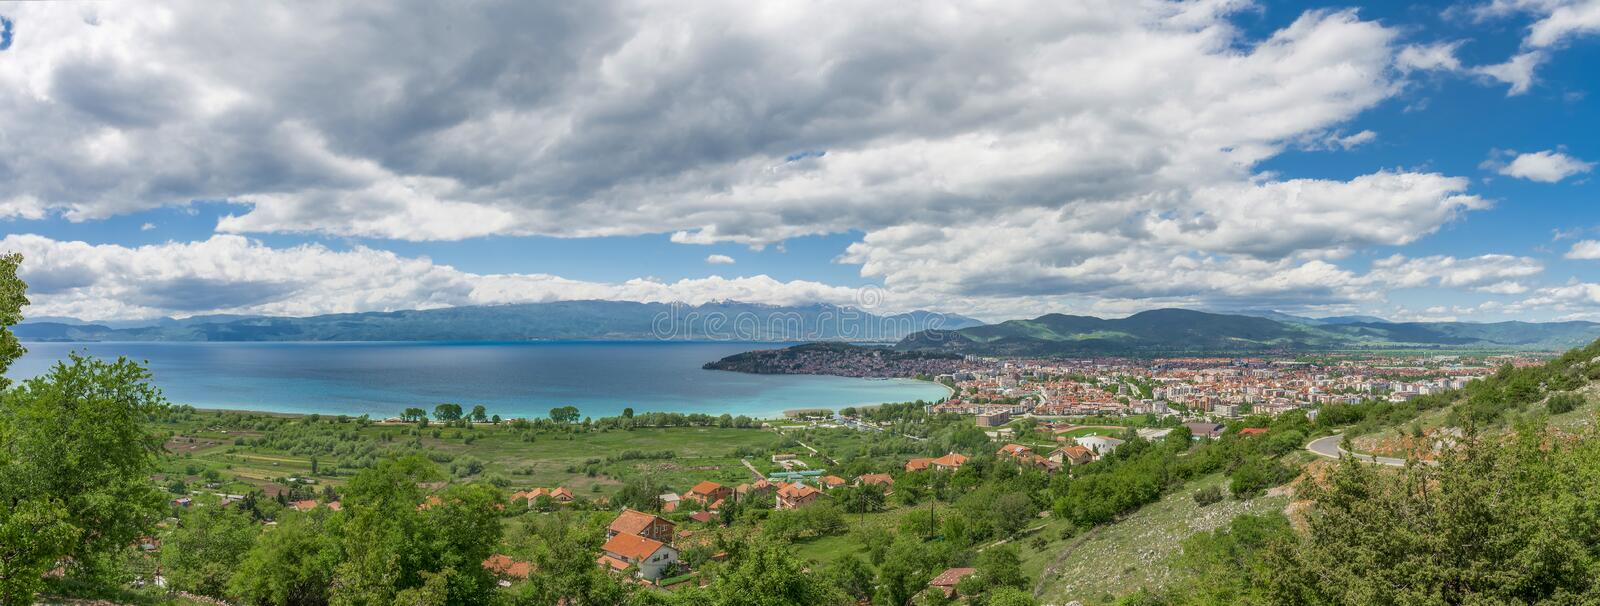 Panoramic view of Ohrid lake and Ohrid town stock photos